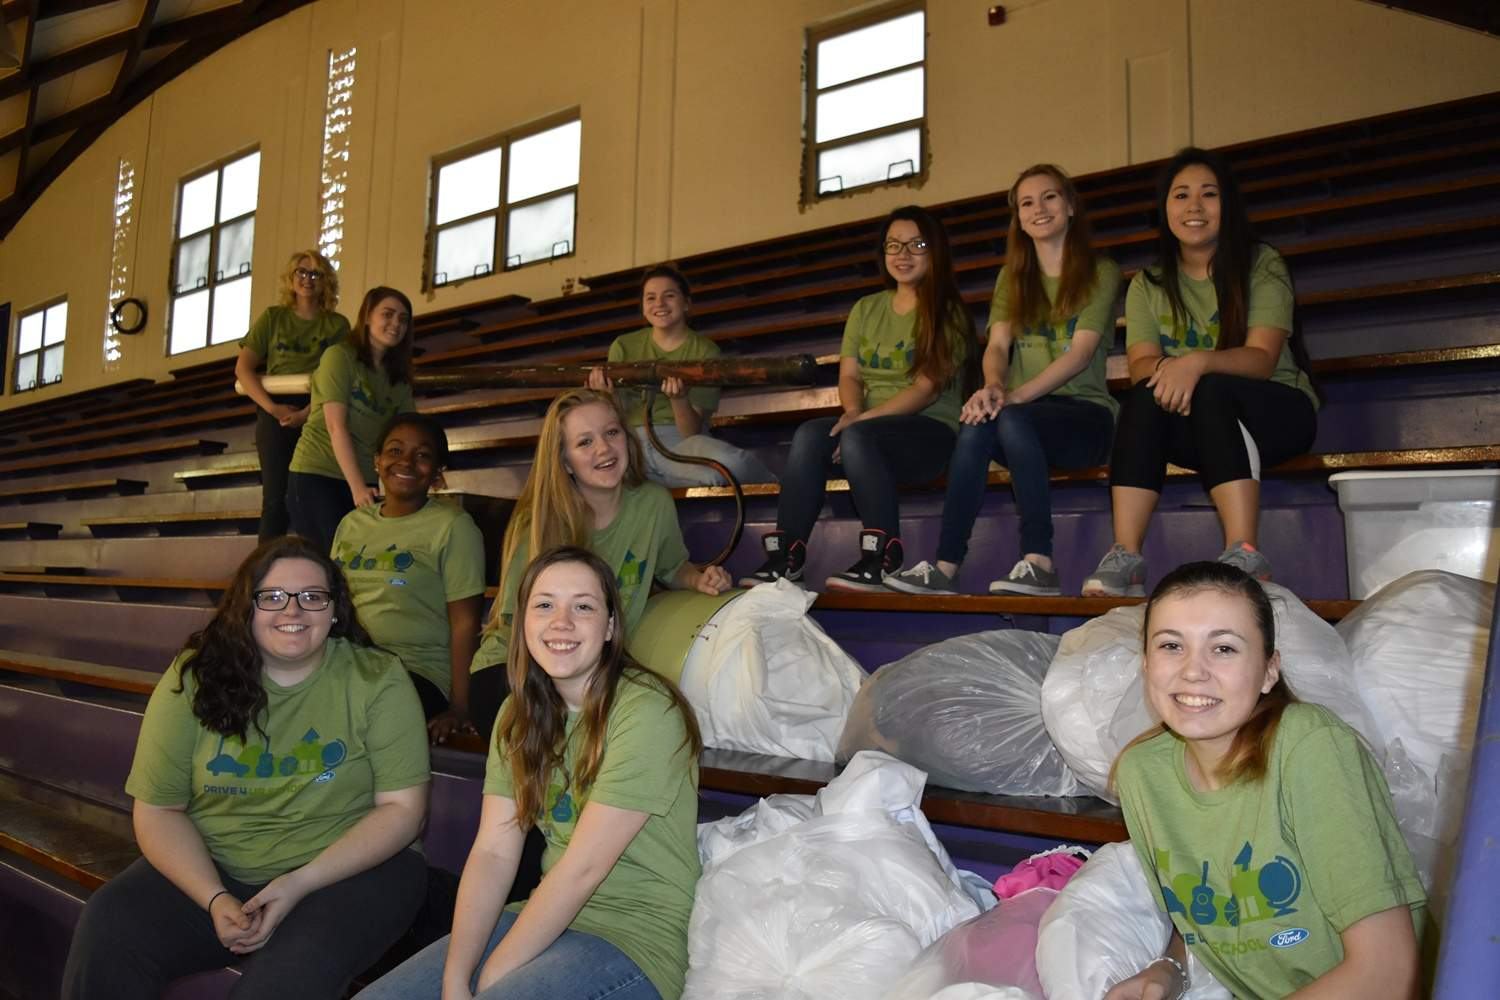 A group of band and color guard volunteer students pause for a break during organizing rummage sale items.